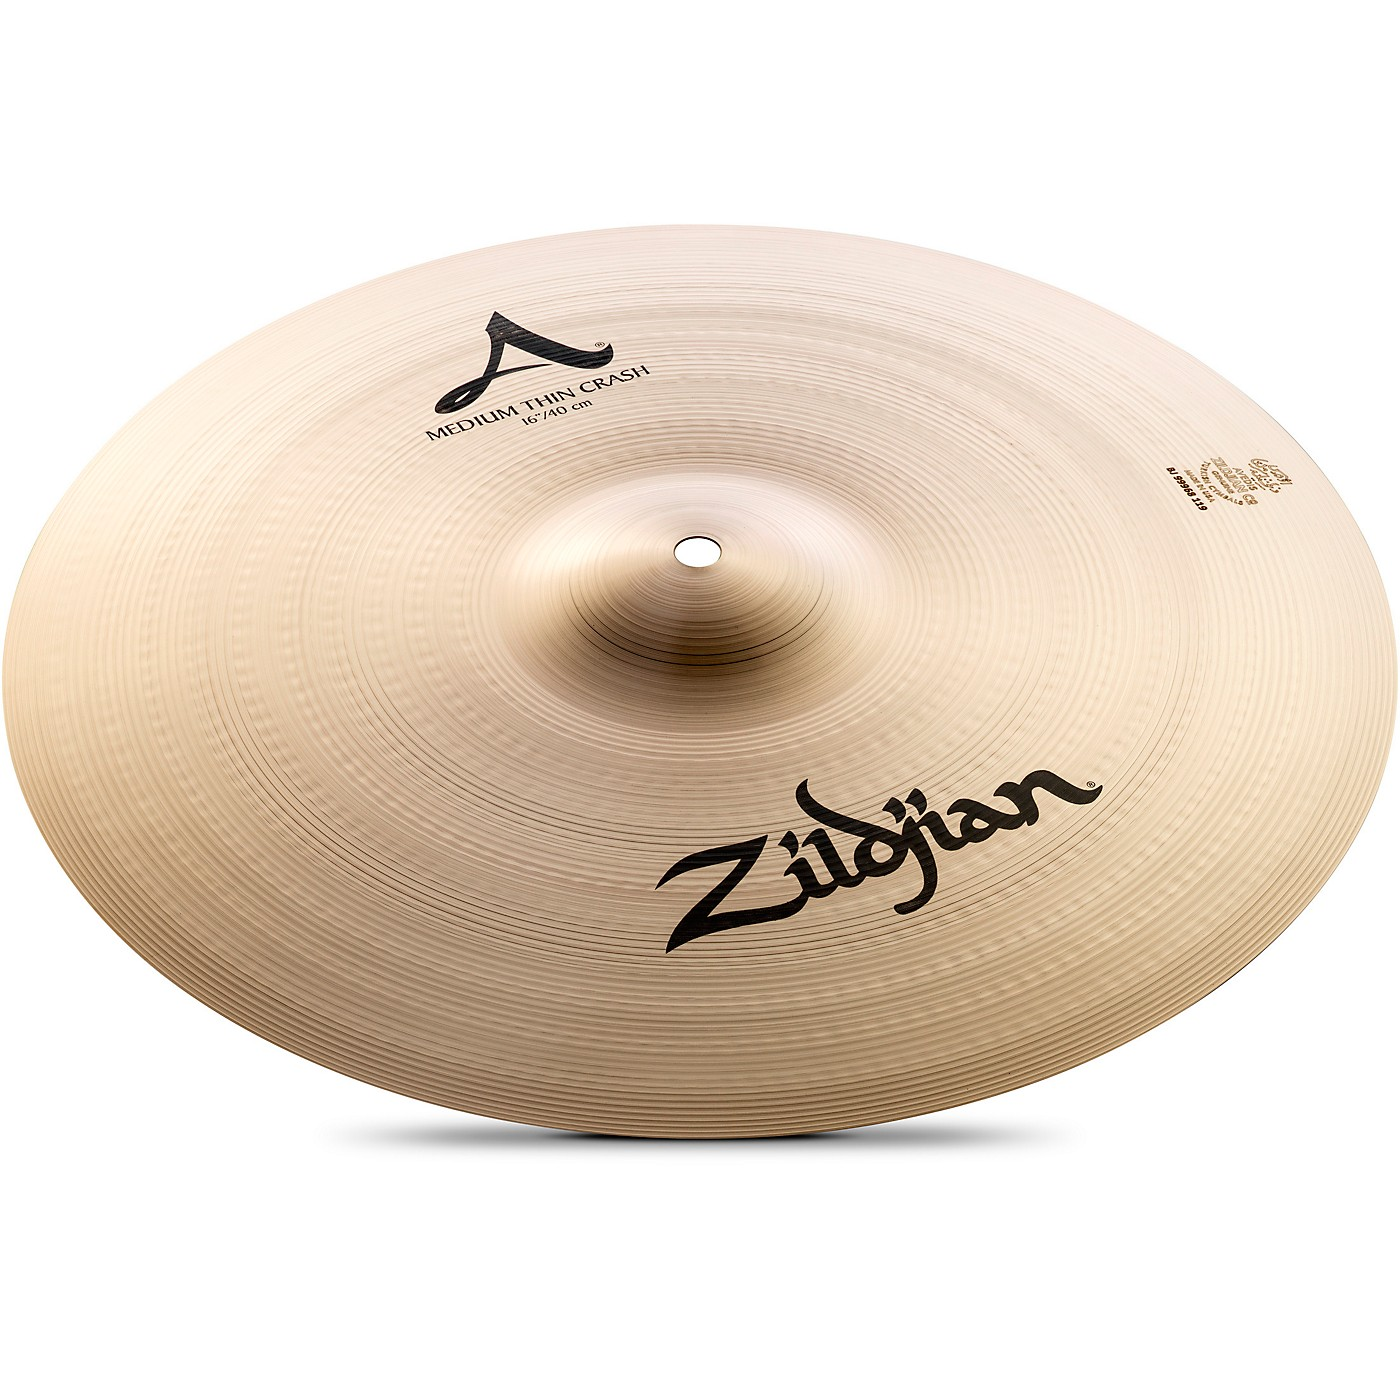 Zildjian A Series Medium-Thin Crash Cymbal thumbnail